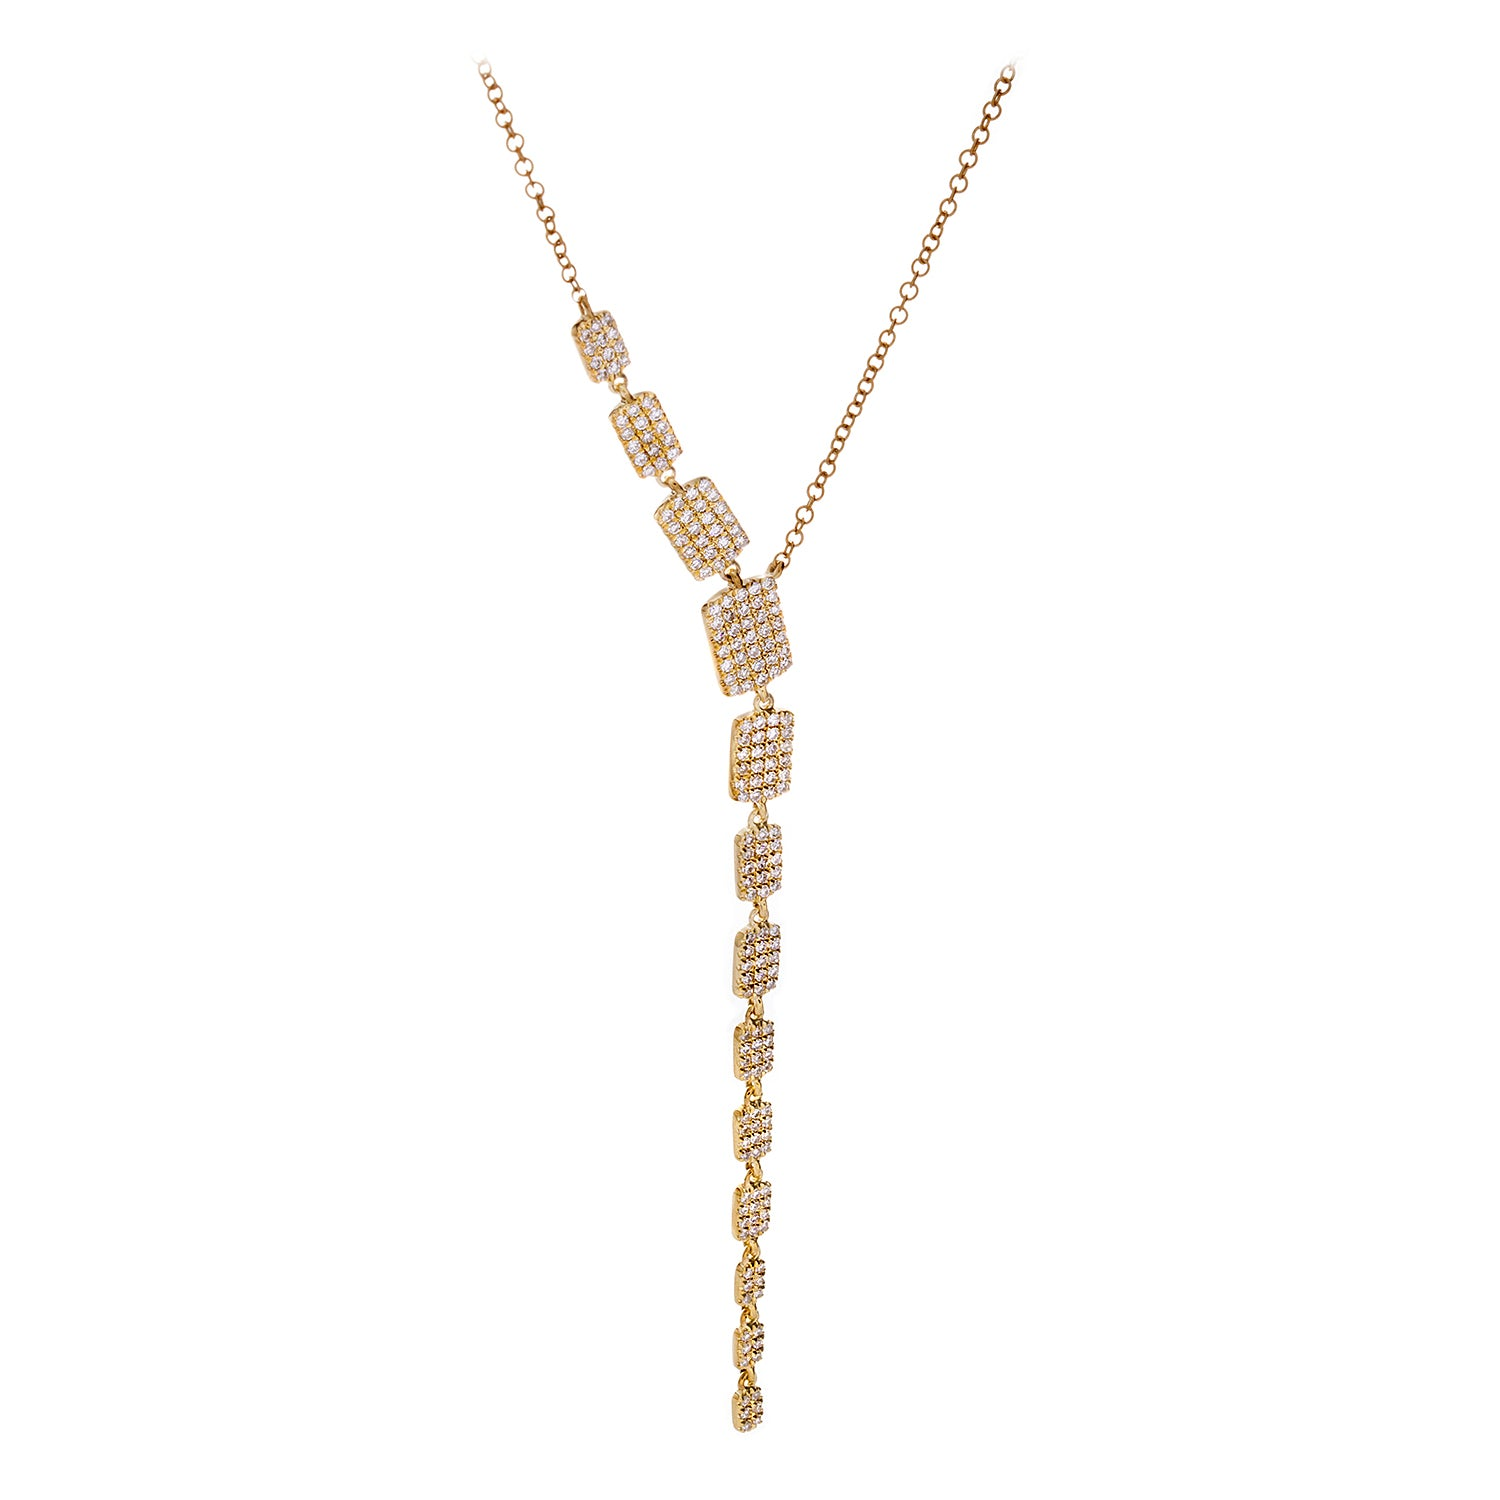 Diamonds & 14K Yellow Gold Lariat Necklace